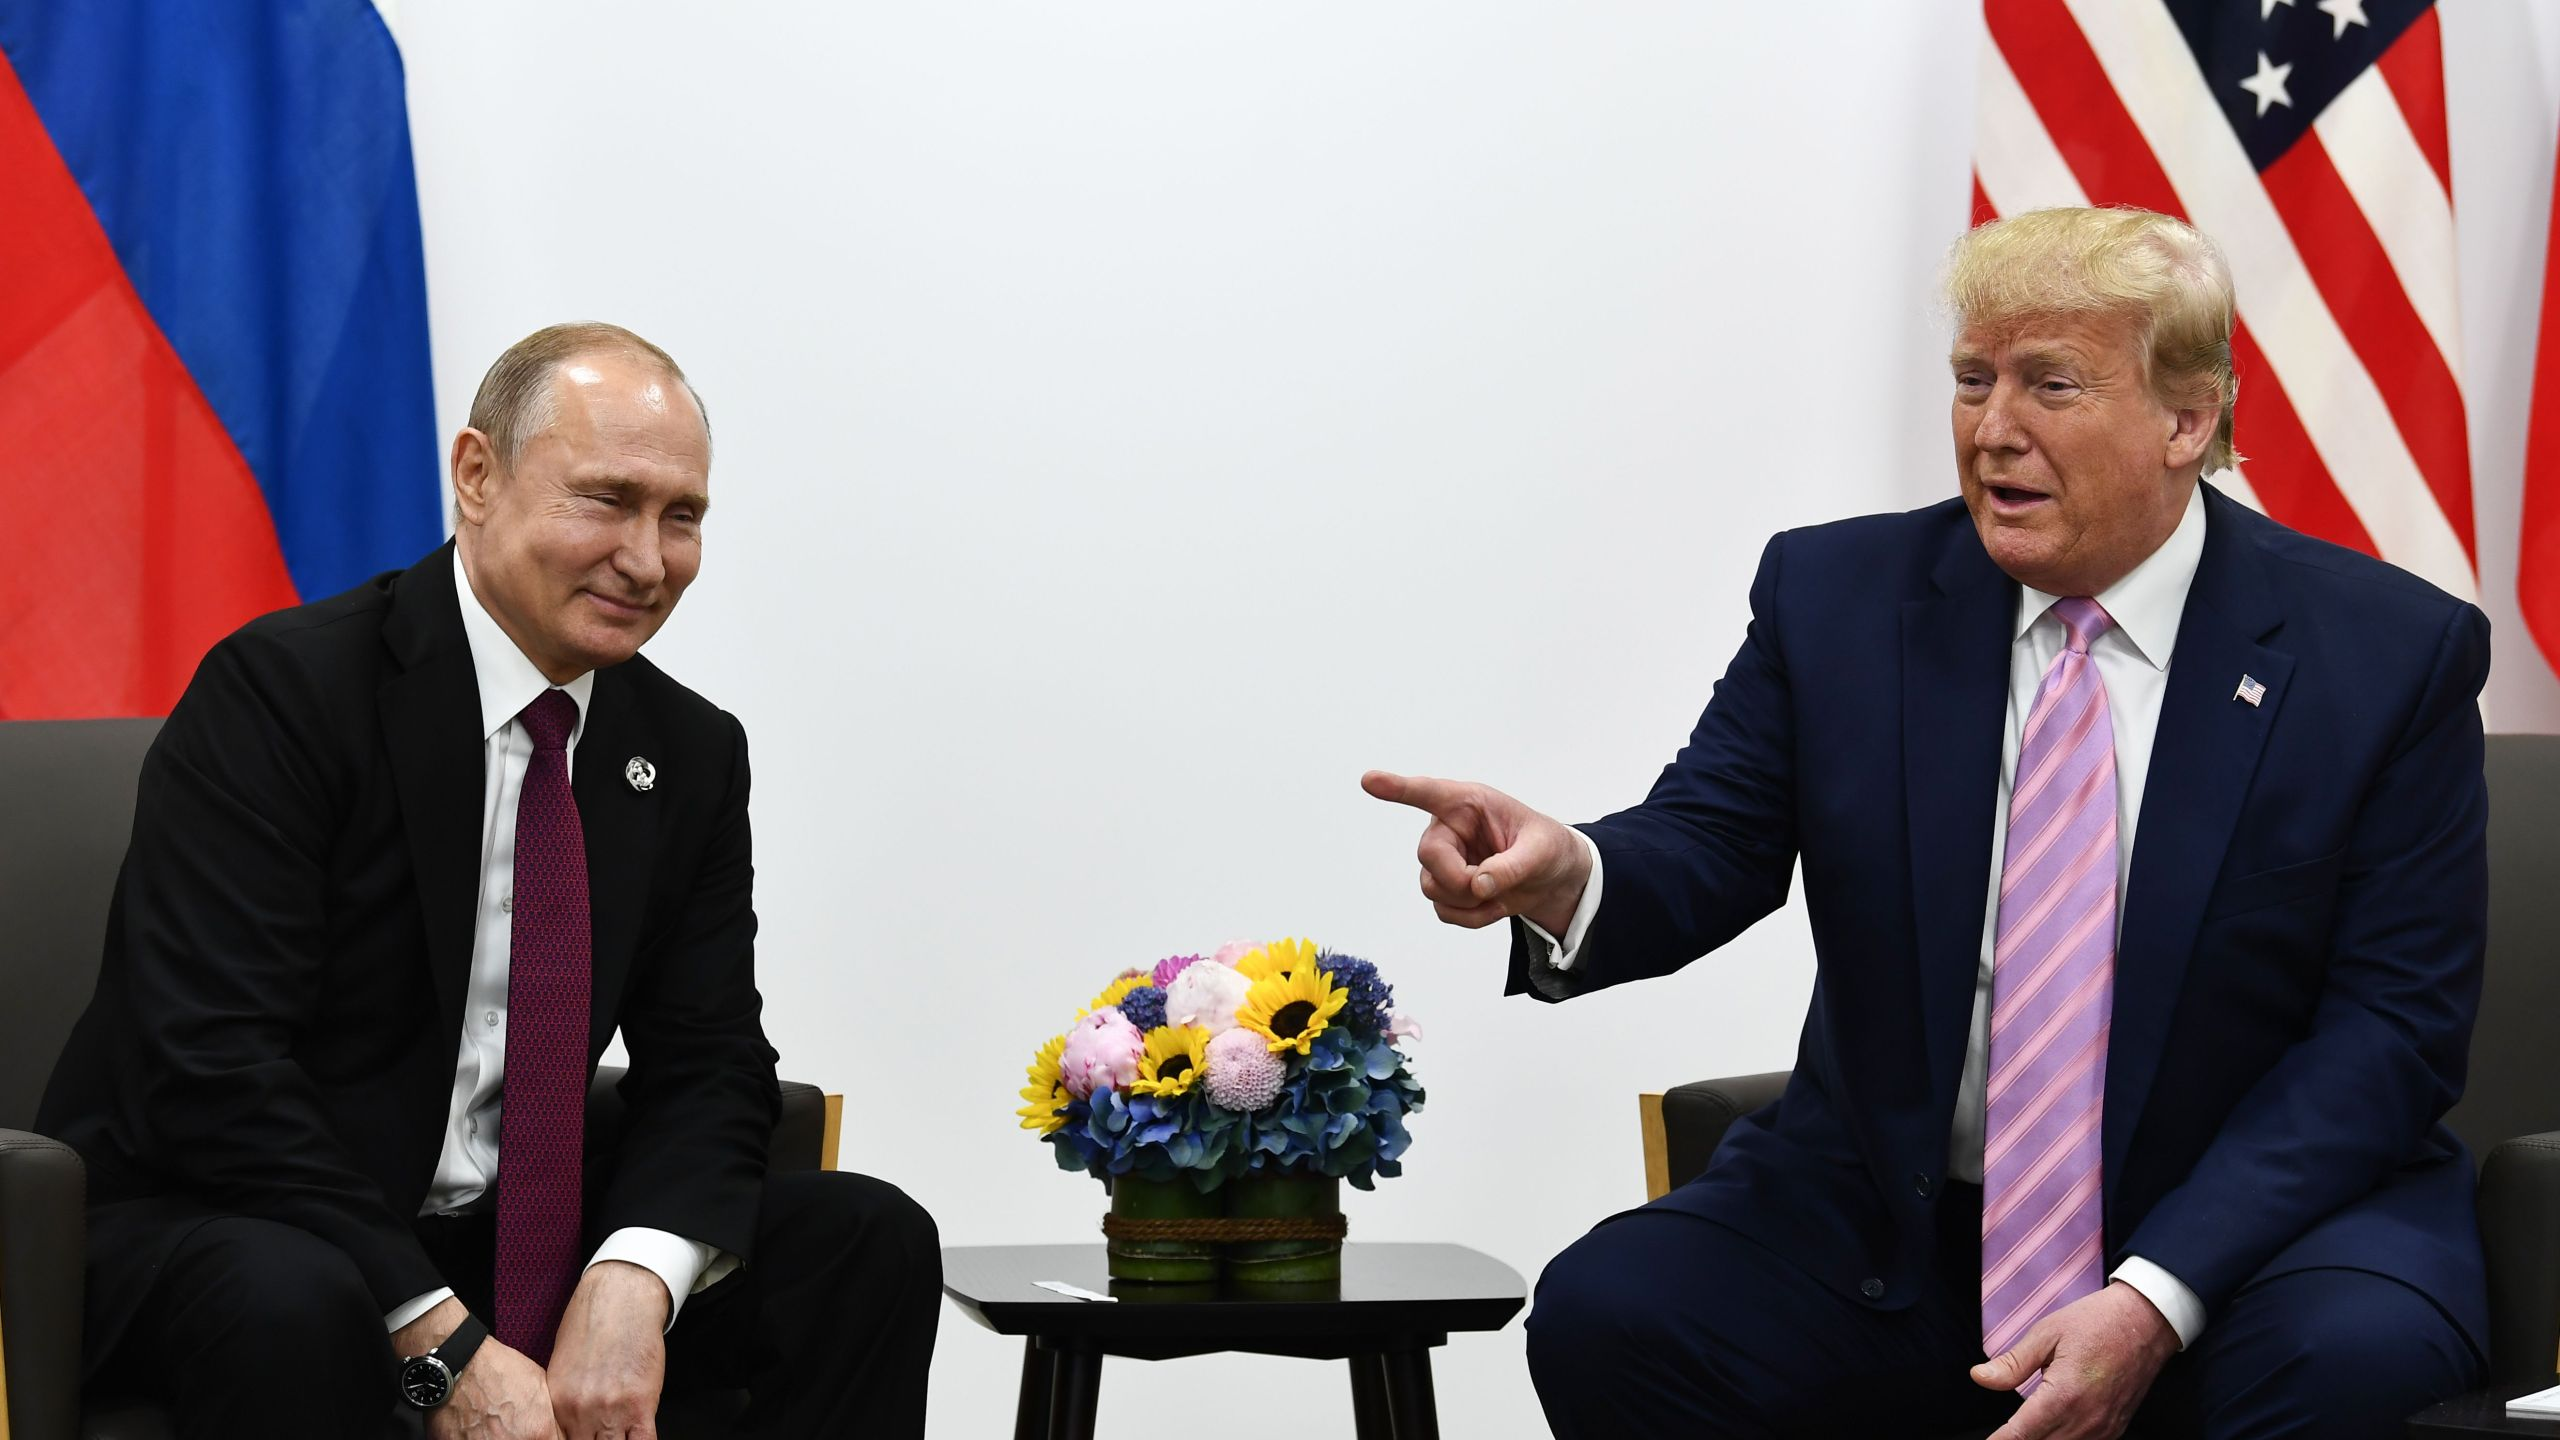 U.S. President Donald Trump attends a meeting with Russia's President Vladimir Putin during the G20 summit in Osaka on June 28, 2019. (Credit: BRENDAN SMIALOWSKI/AFP/Getty Images)